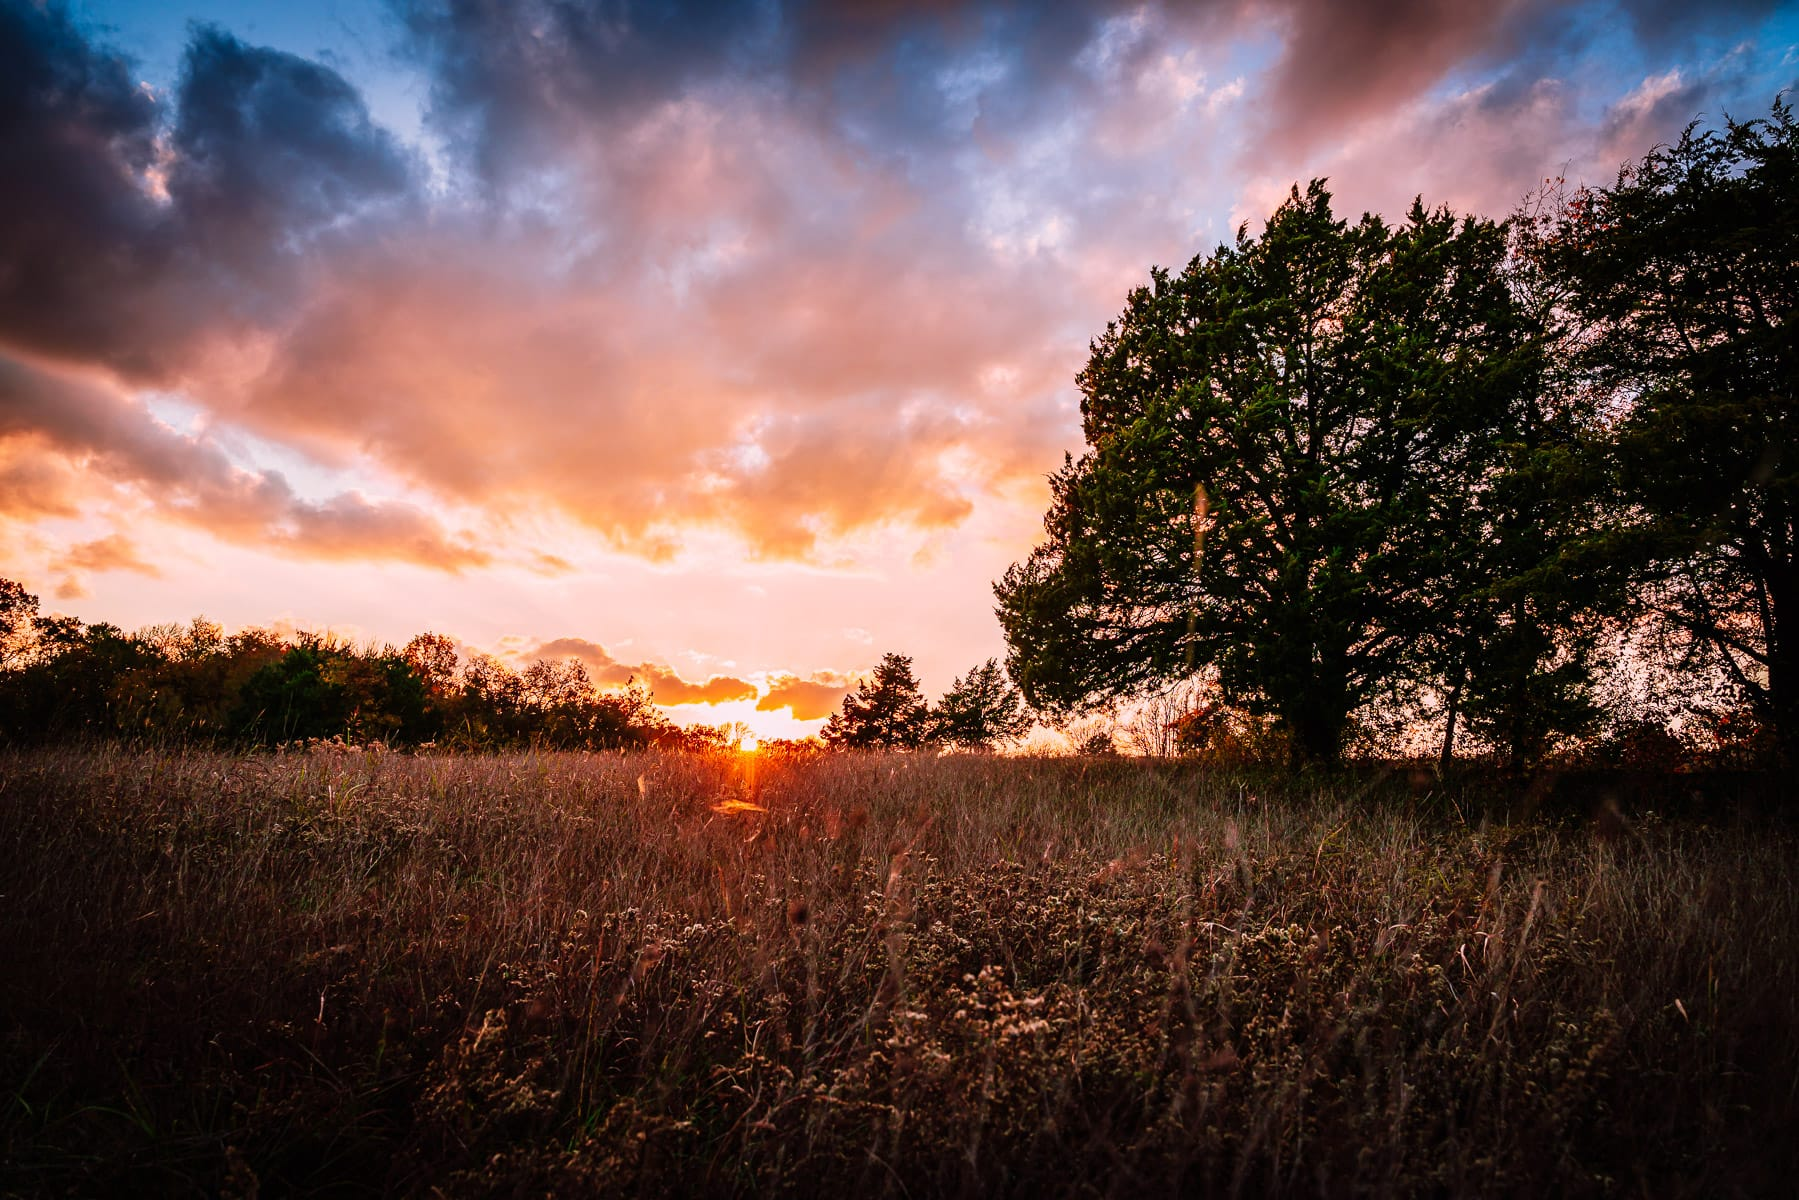 The sun sets on McKinney, Texas' Erwin Park.